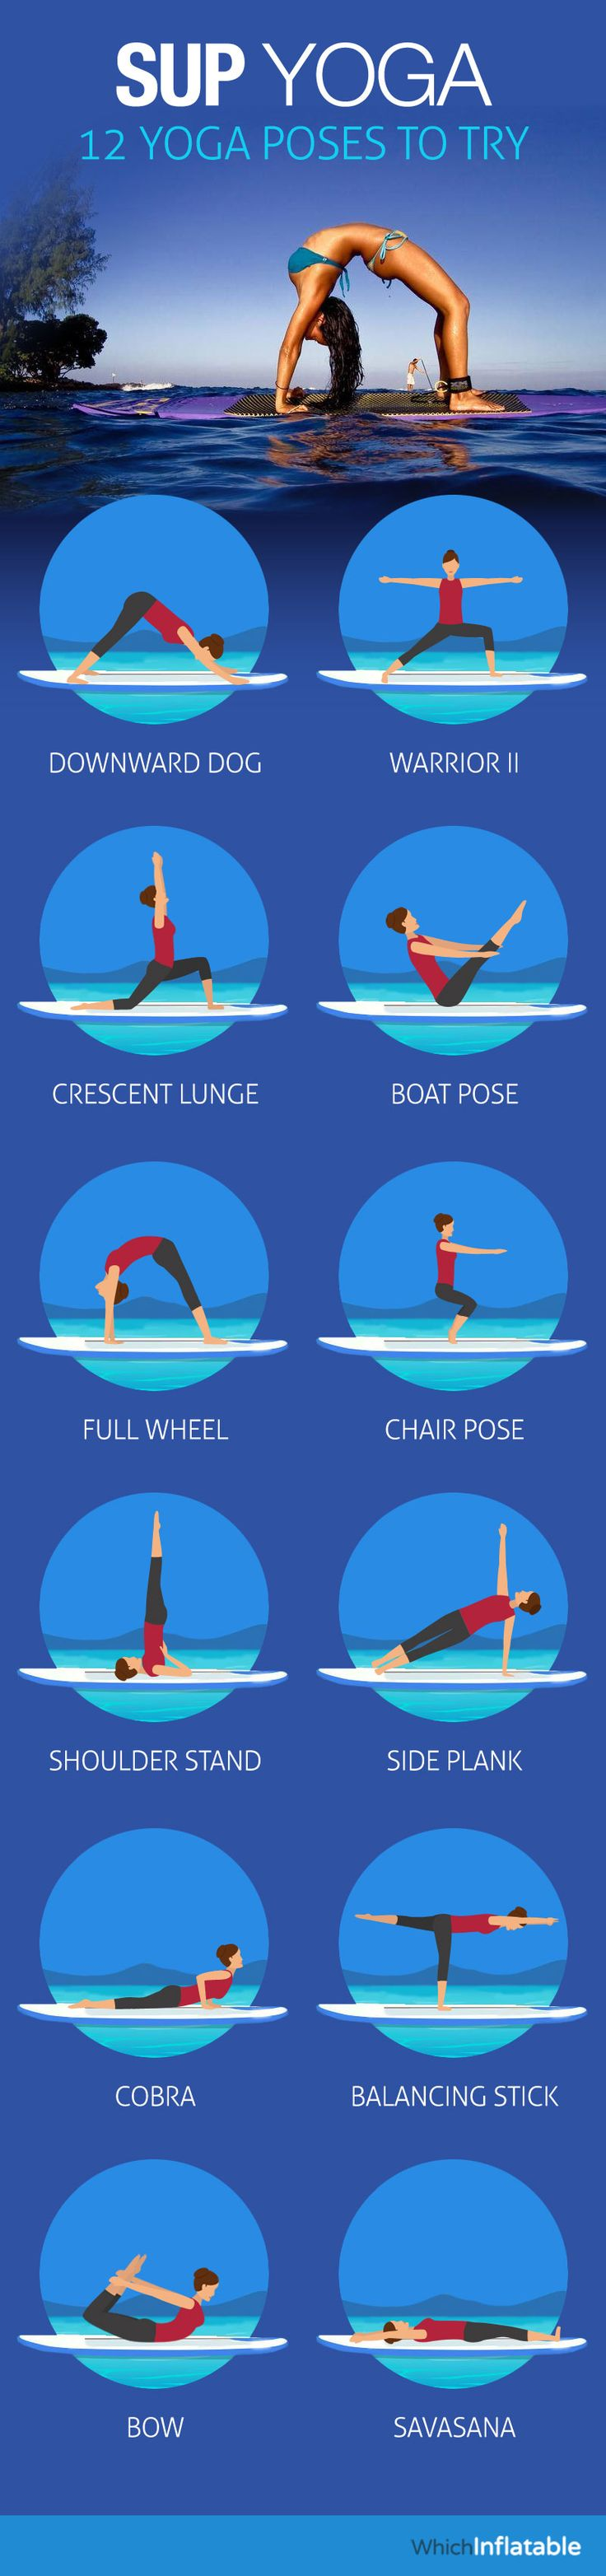 Must try these! 12 Amazing SUP Yoga Poses You Should Try! [INFOGRAPHIC]